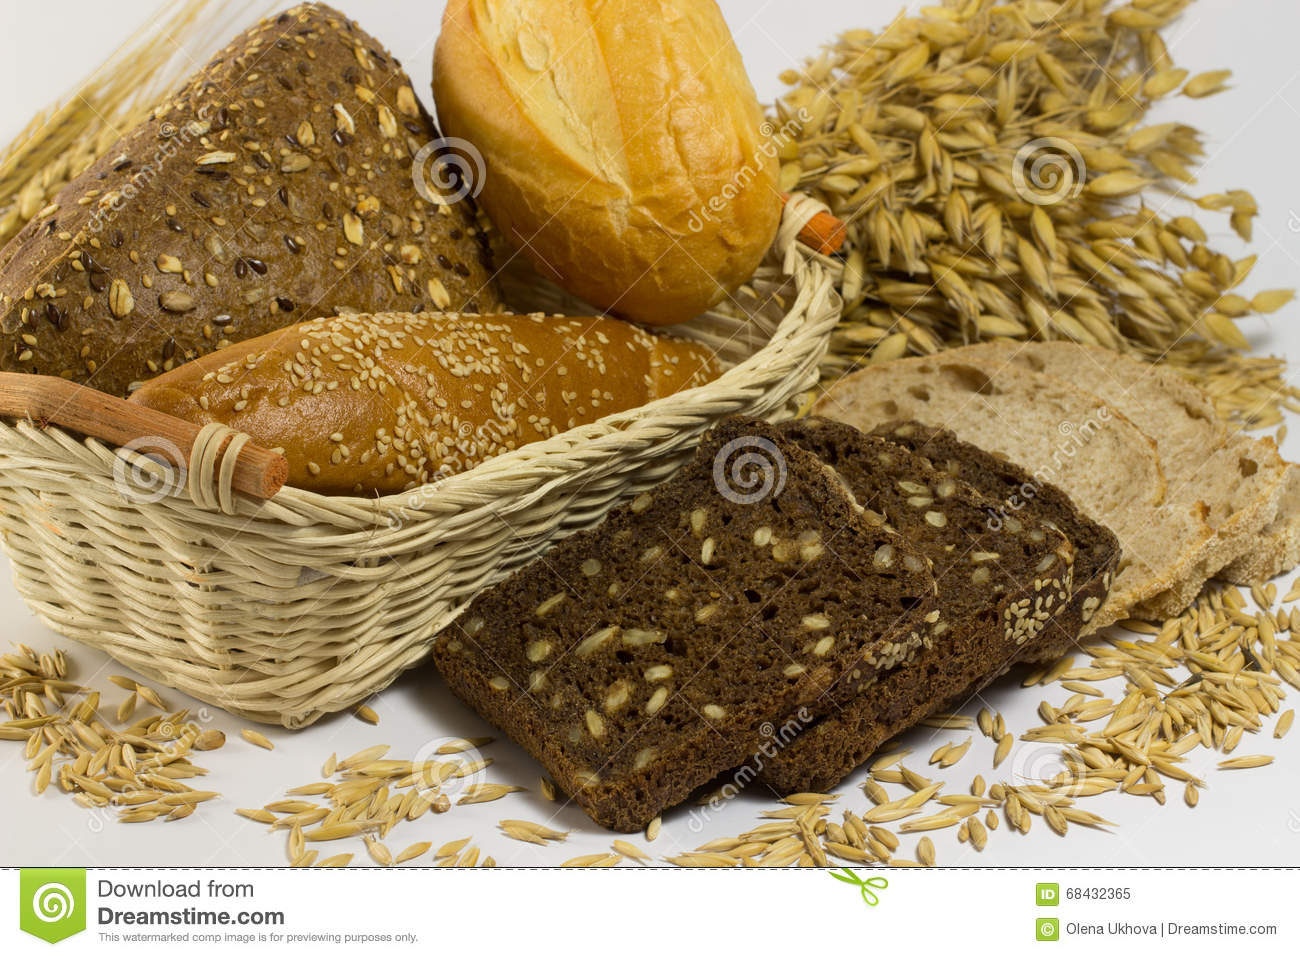 Different types of bread: white and black with seeds, baguettes